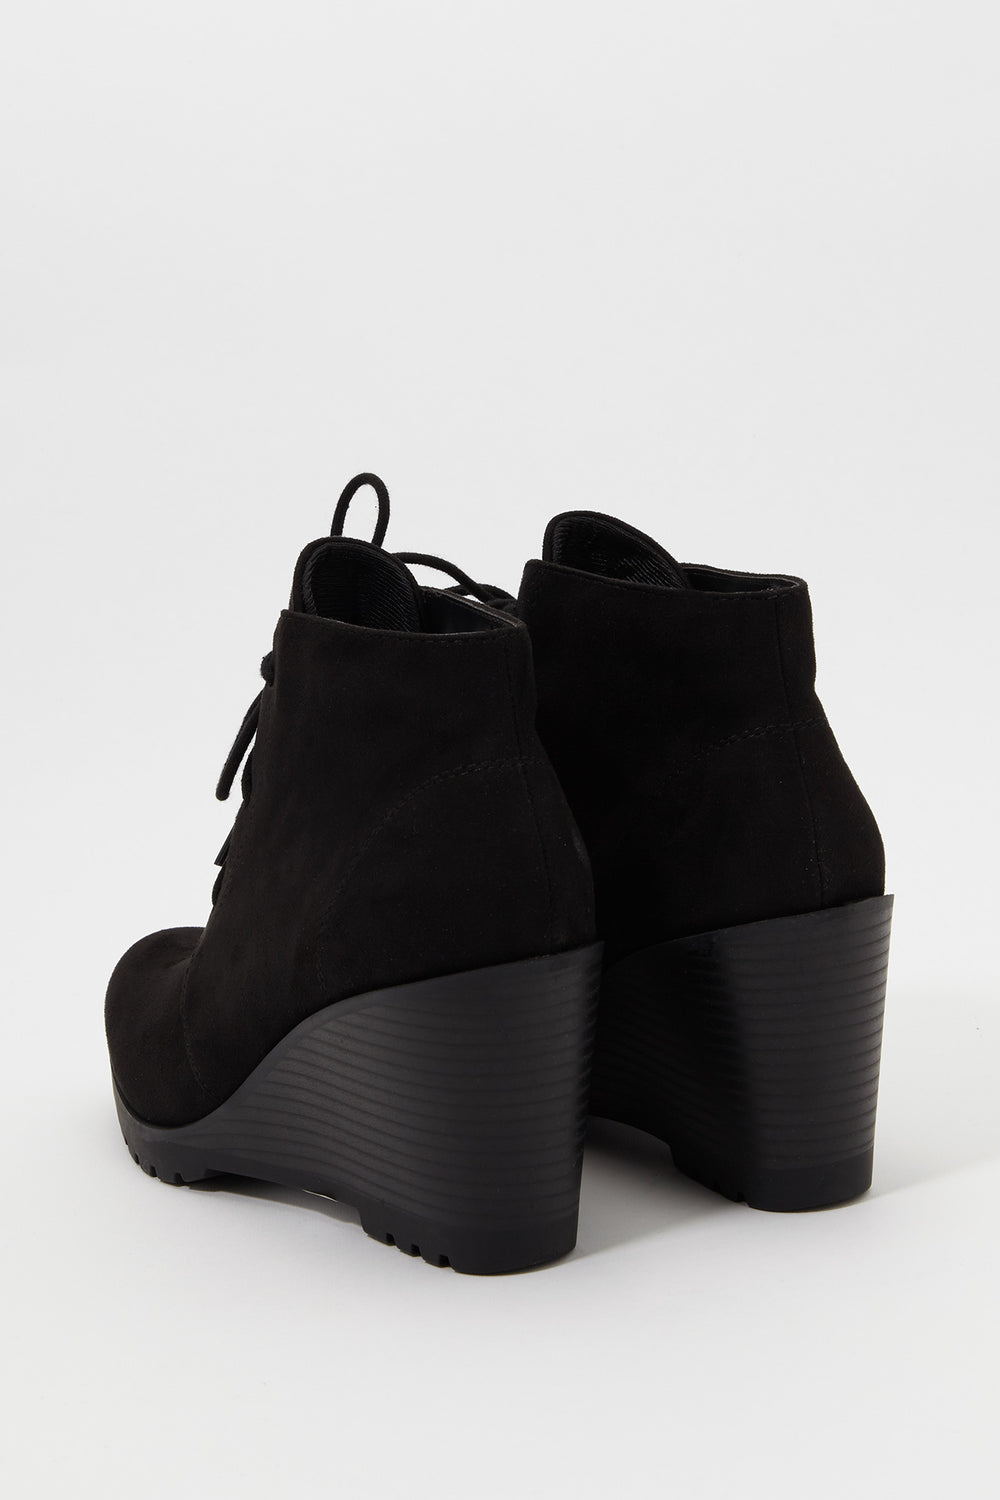 Lace-Up Wedge Heel Bootie Black